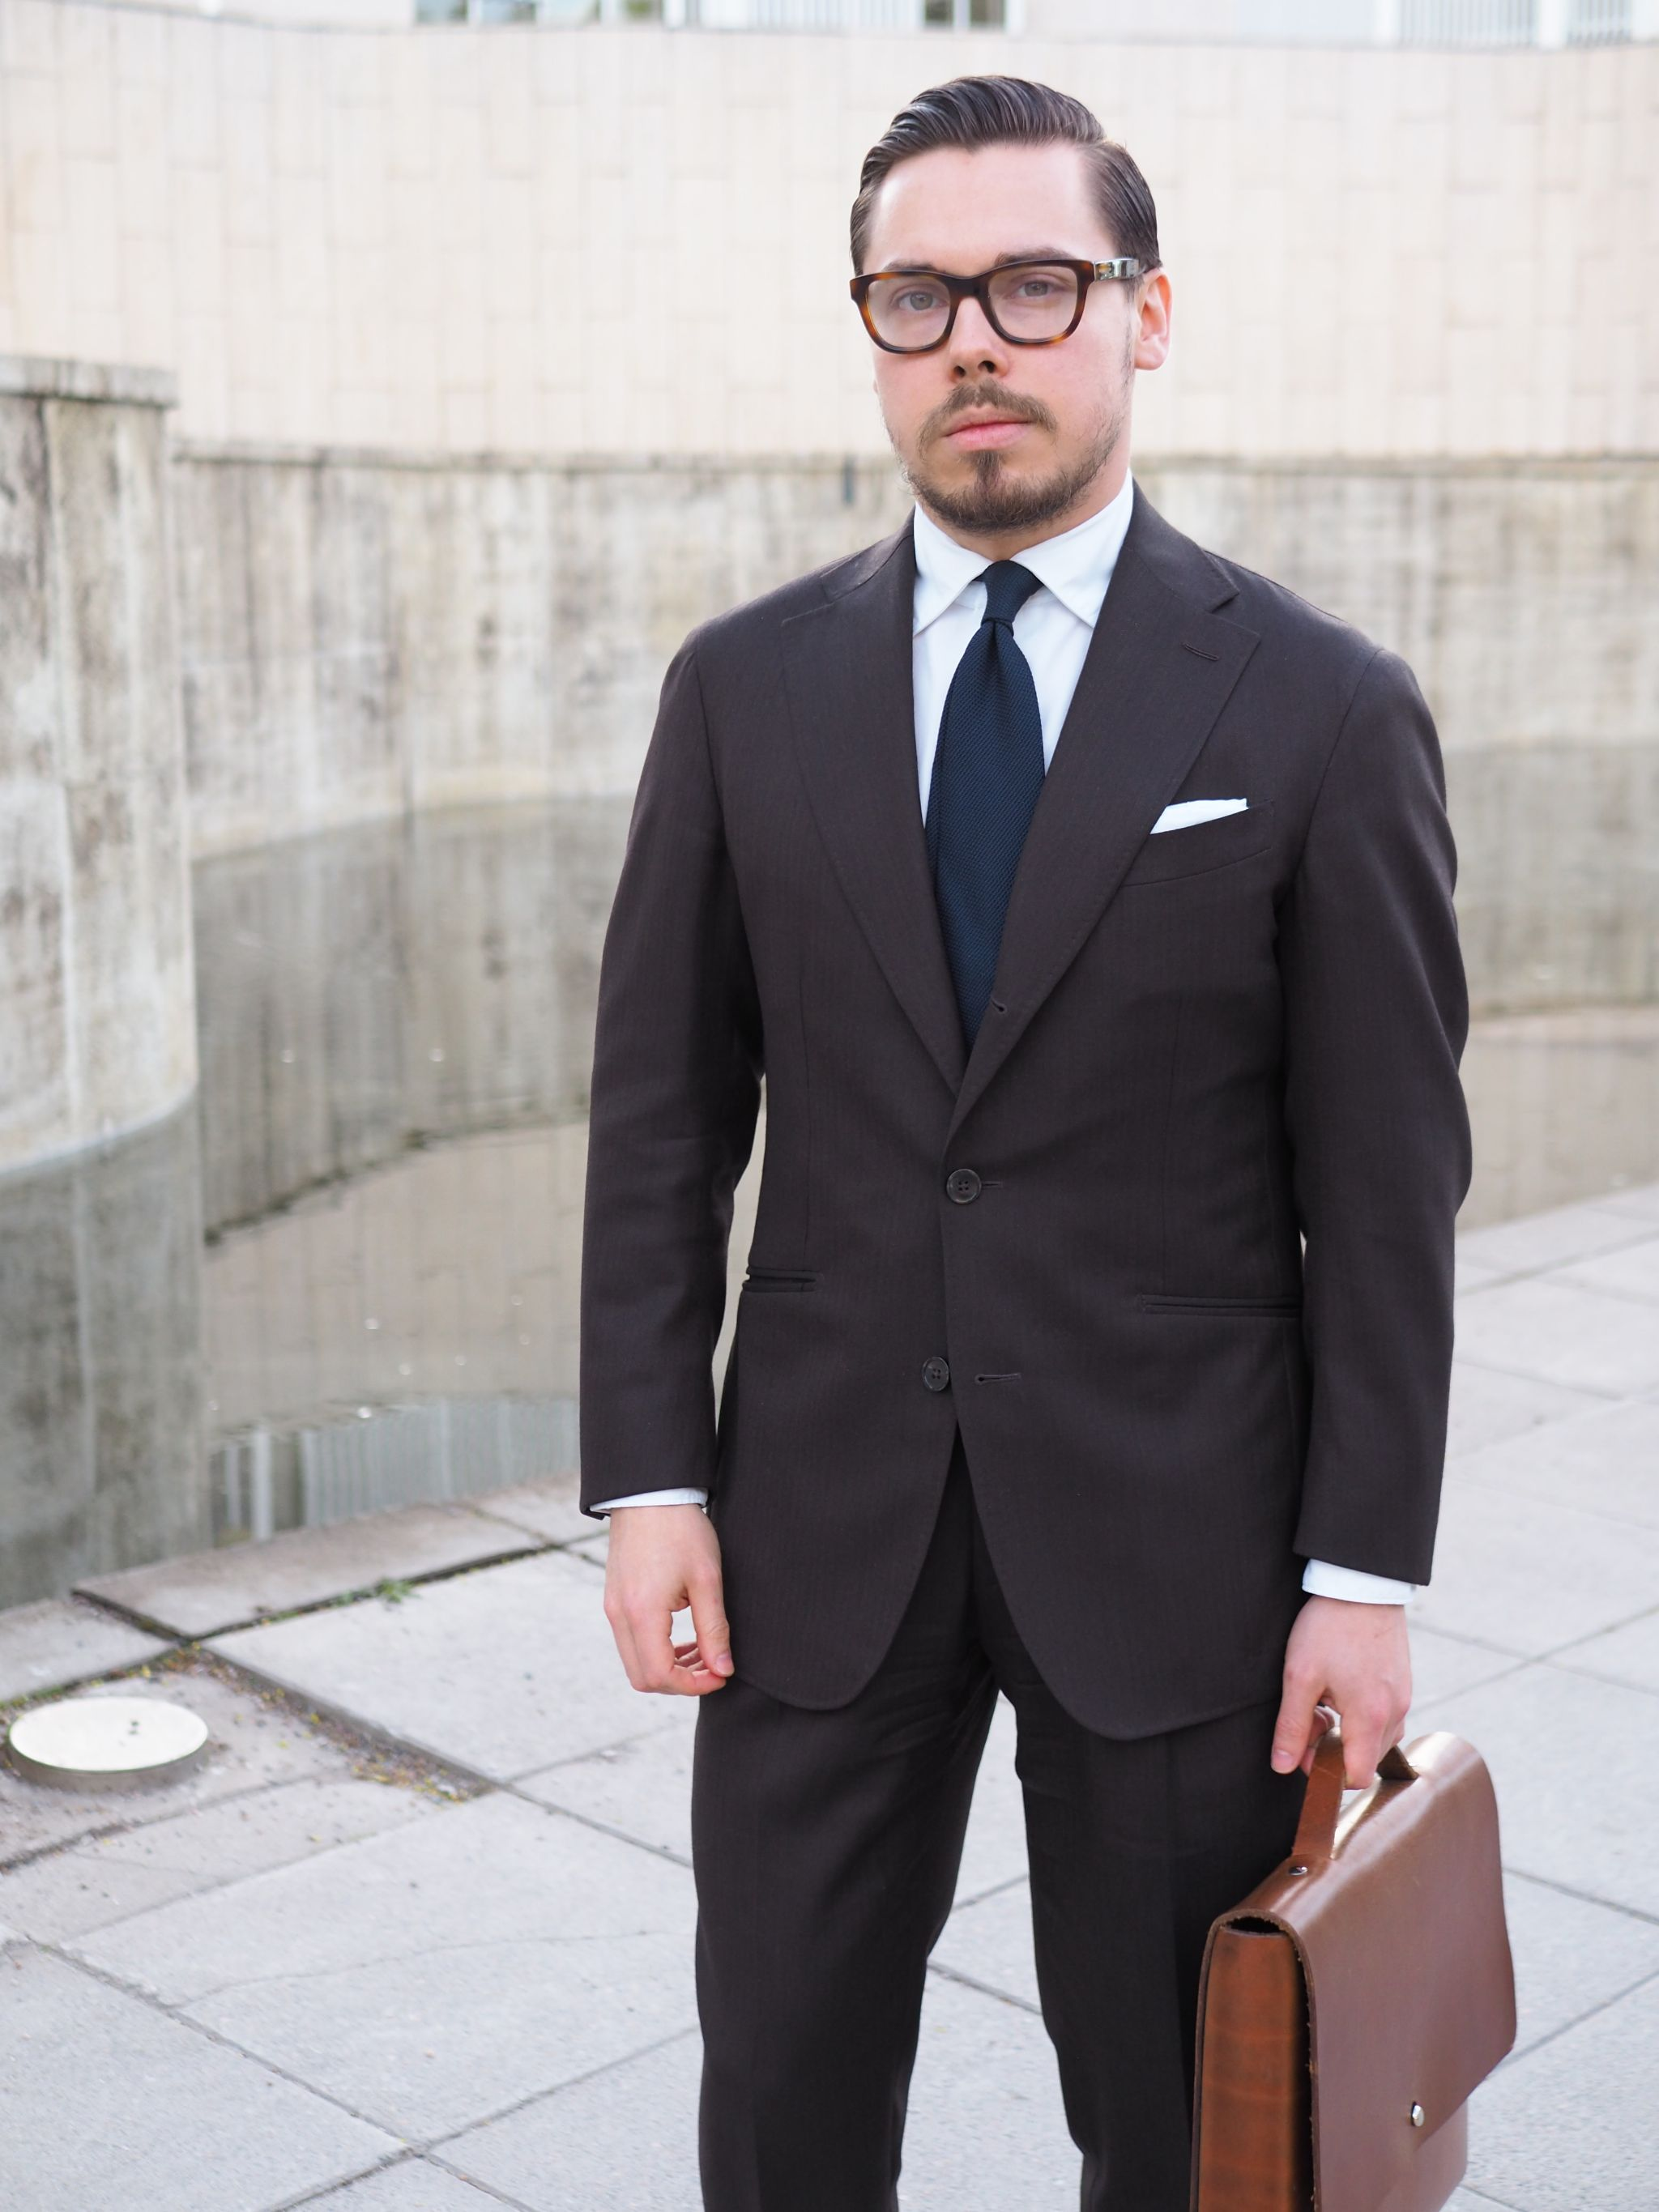 Brown business suit - outfit to wear for the formal business meetings